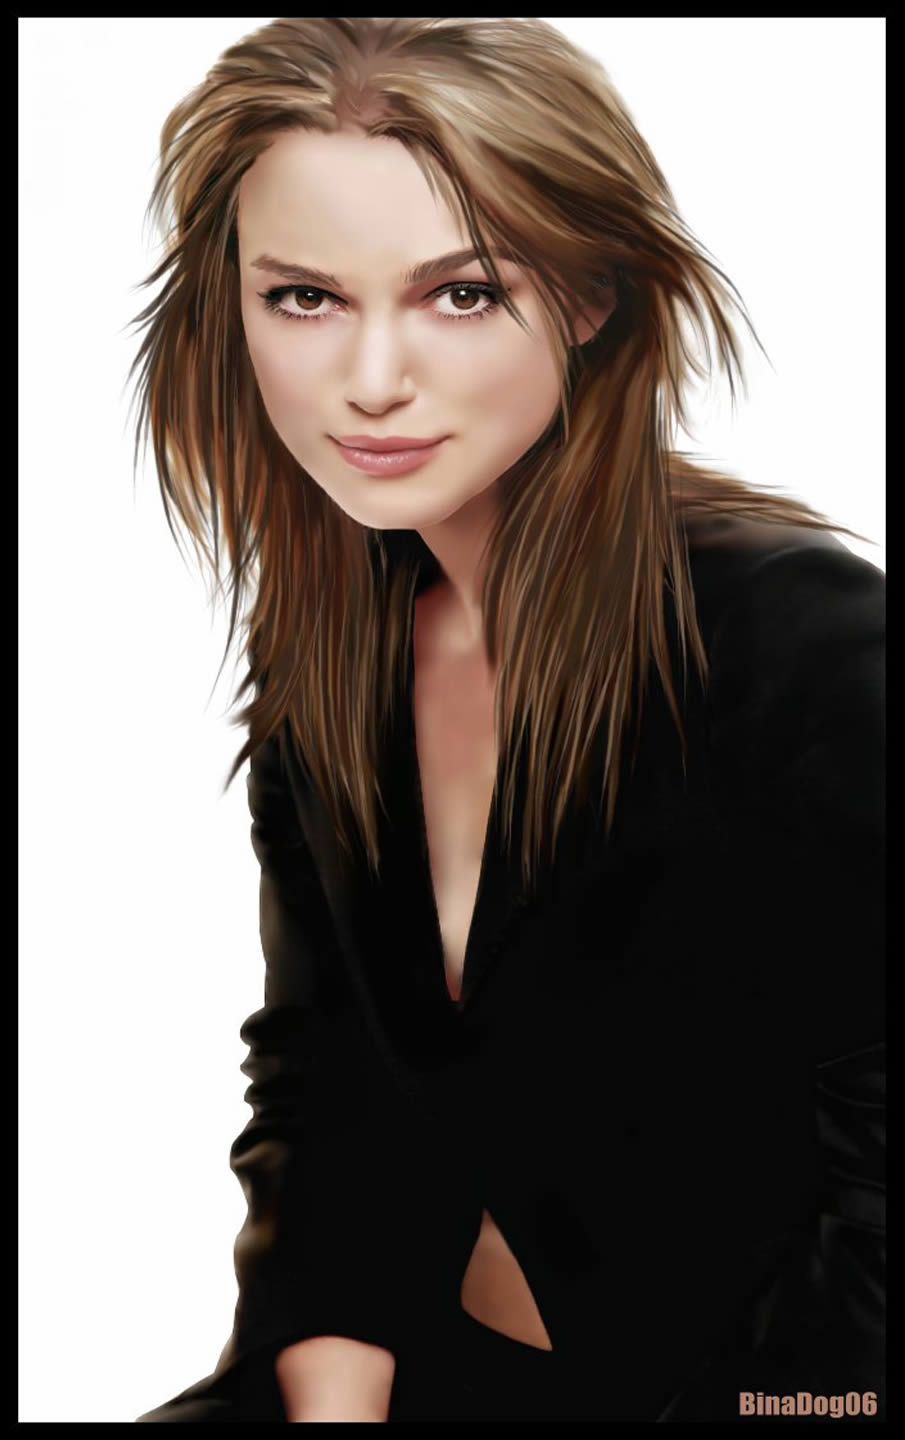 Keira Knightley Digital Painting